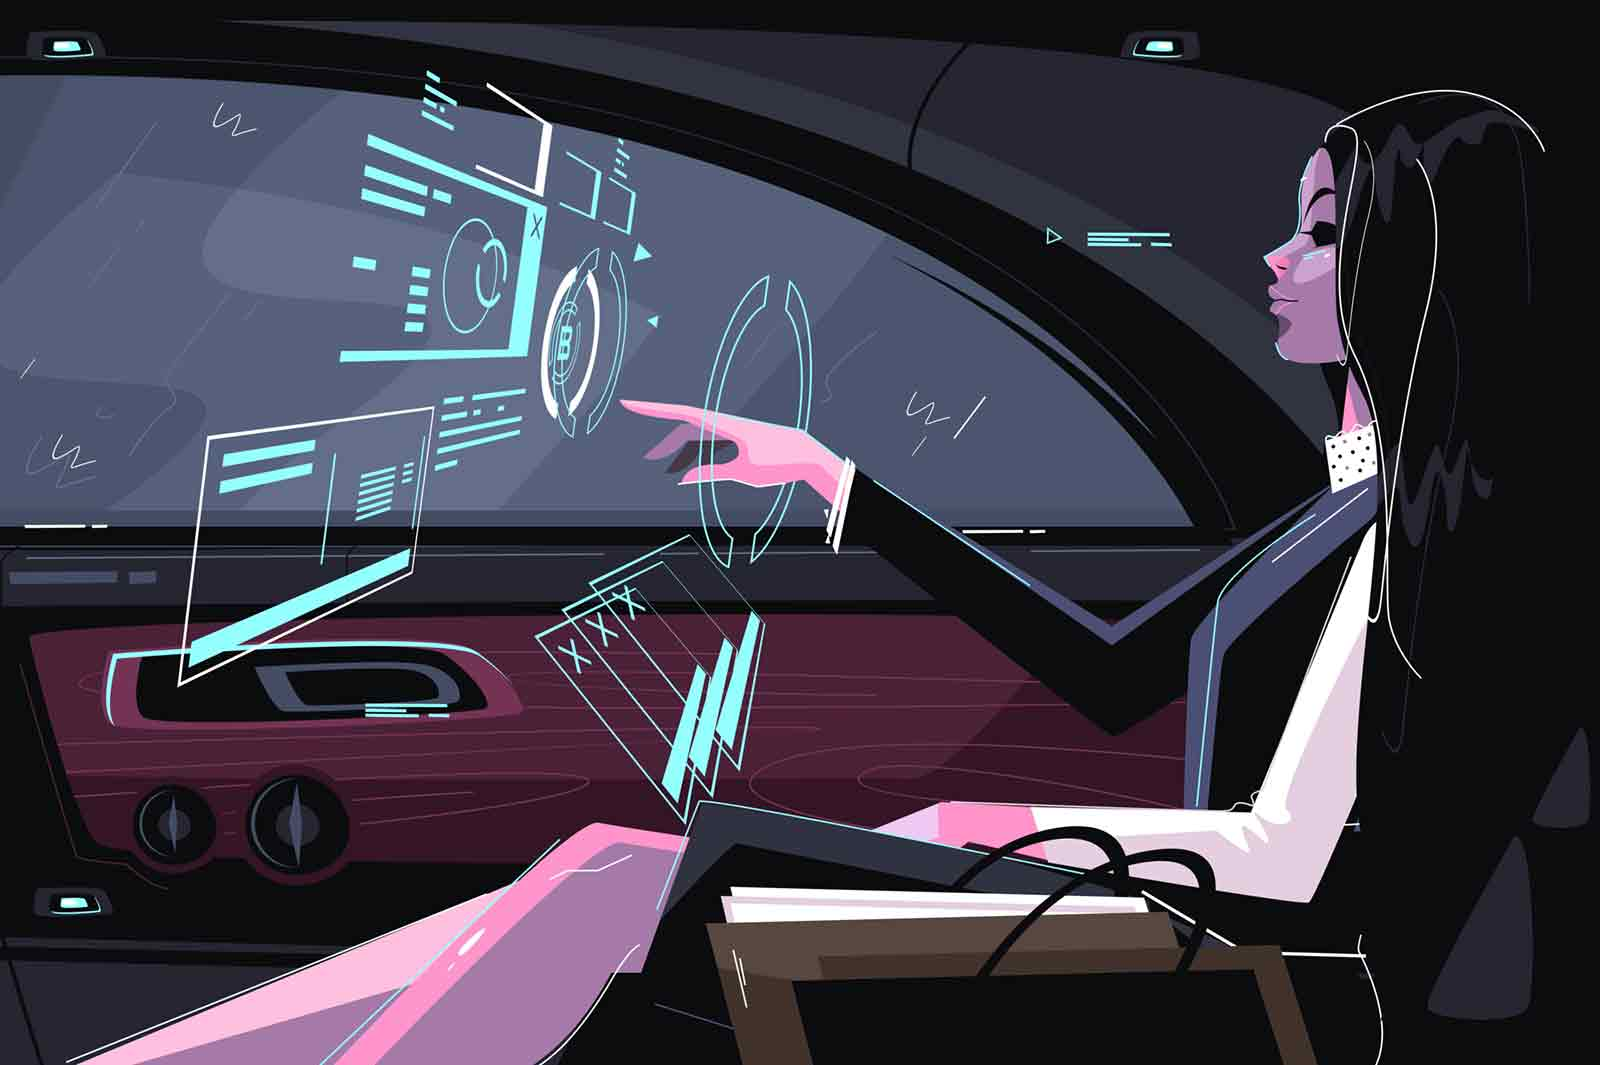 Business girl in car vector illustration. Cute businesswoman sitting in vehicle and working with biz hologram flat style design. Futuristic digital technology concept